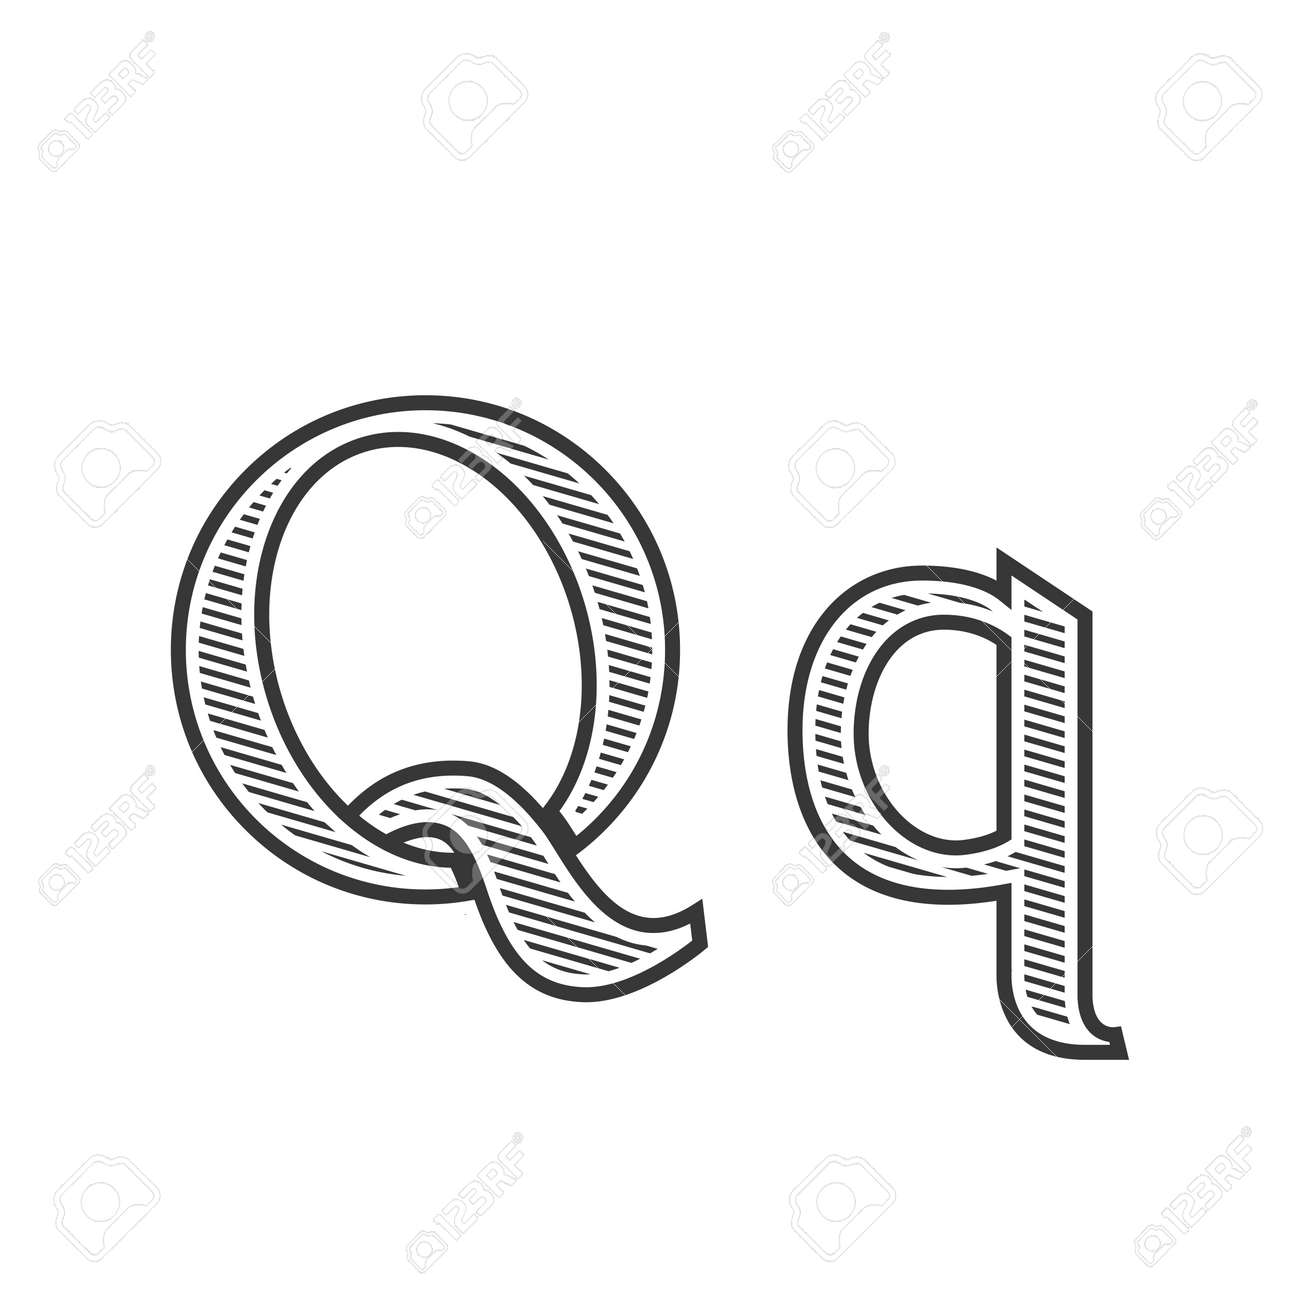 Font Tattoo Engraving Letter Q Black And White With Shading Royalty